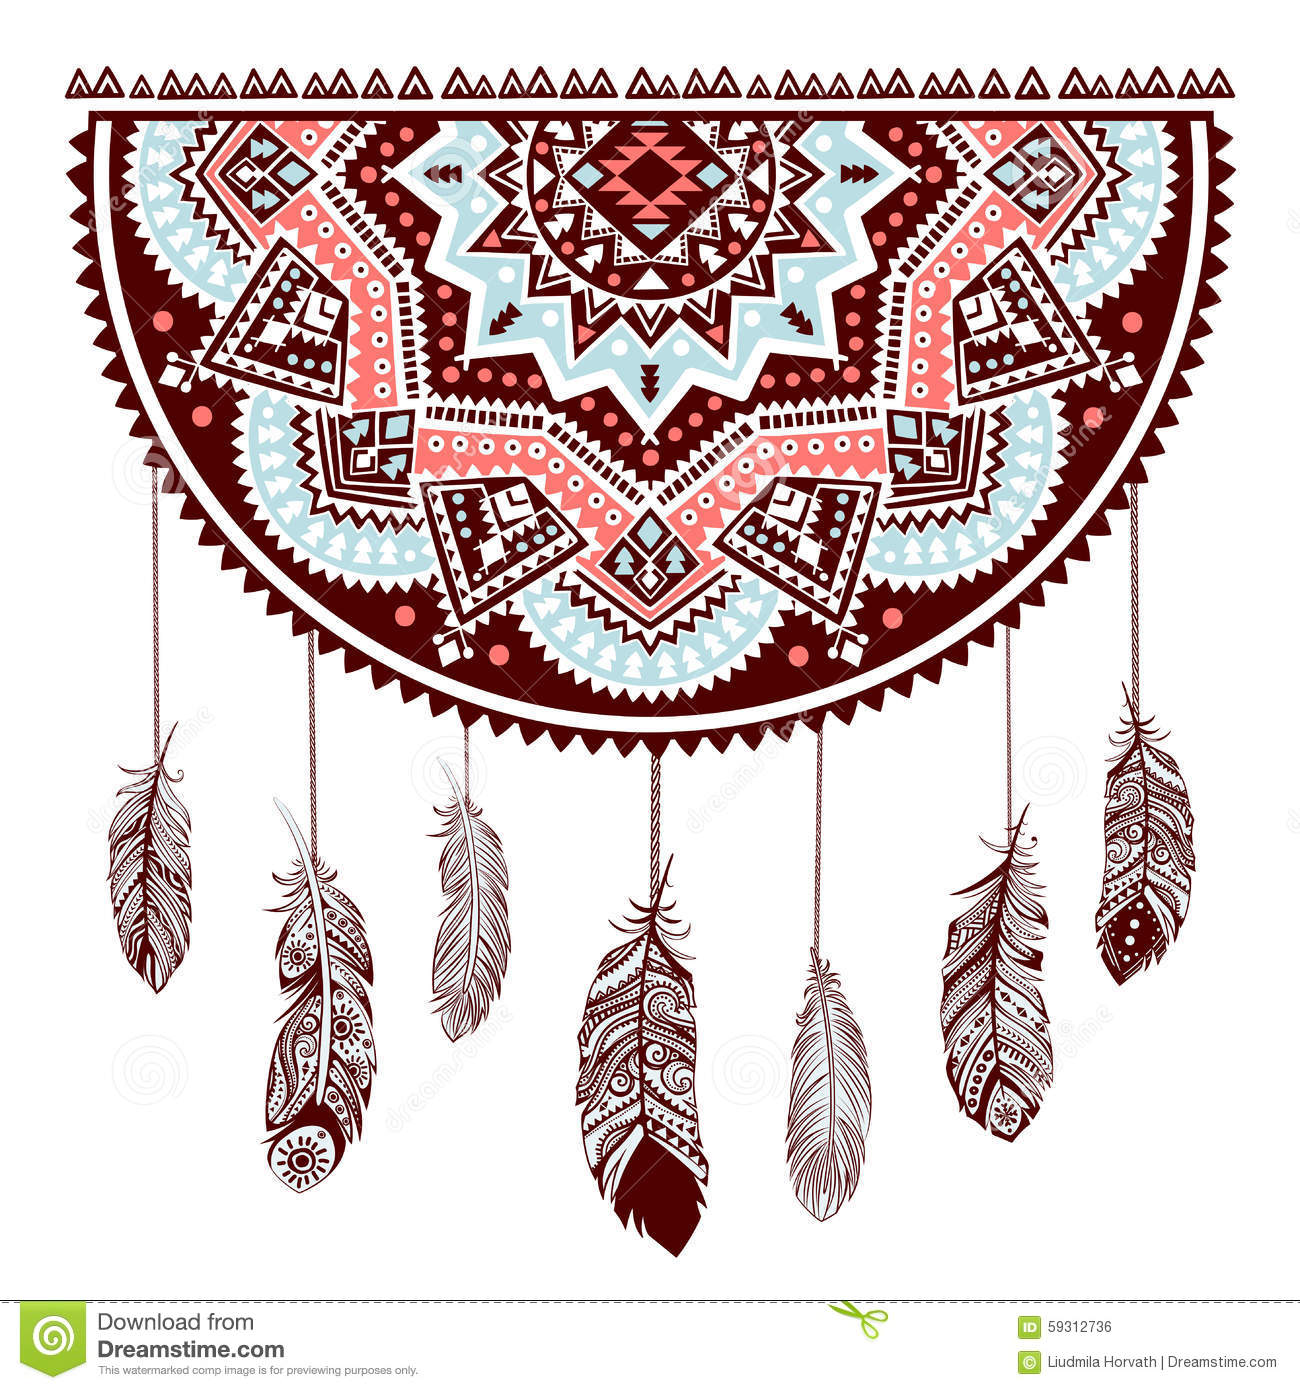 Ethnic american indian dream catcher stock vector illustration of download ethnic american indian dream catcher stock vector illustration of indian flight 59312736 m4hsunfo